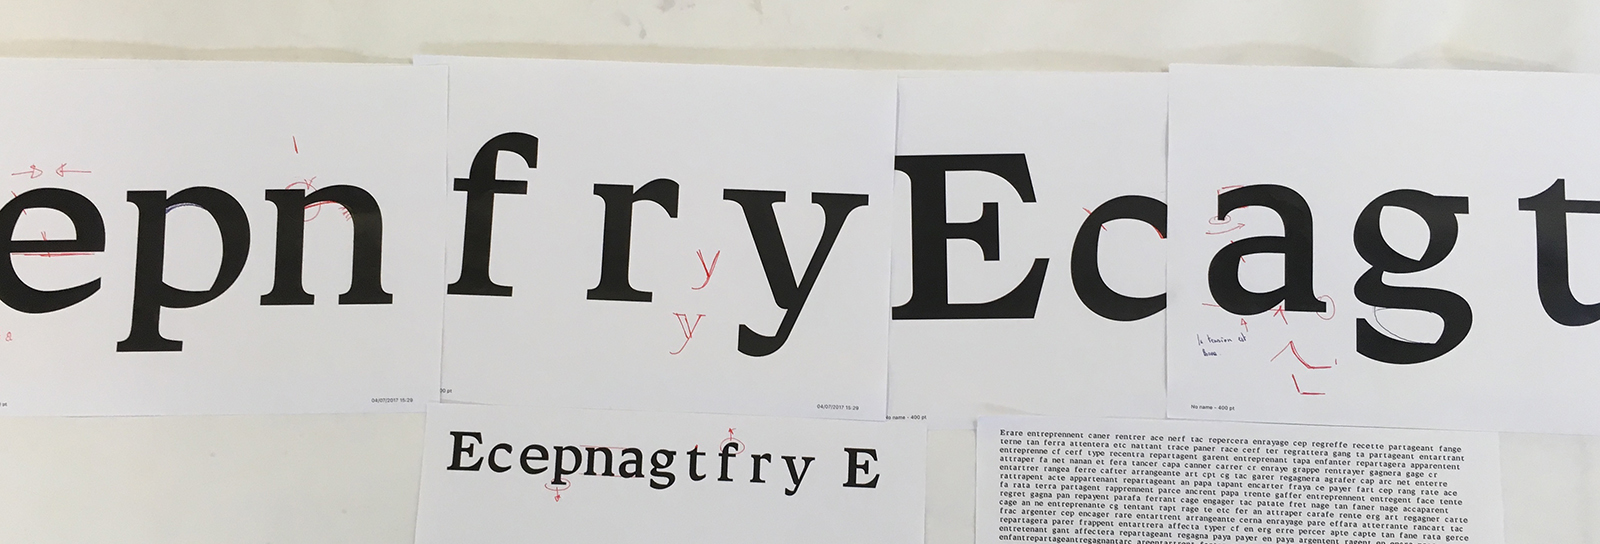 Week #3 Digitising letterforms and exploring new design spaces